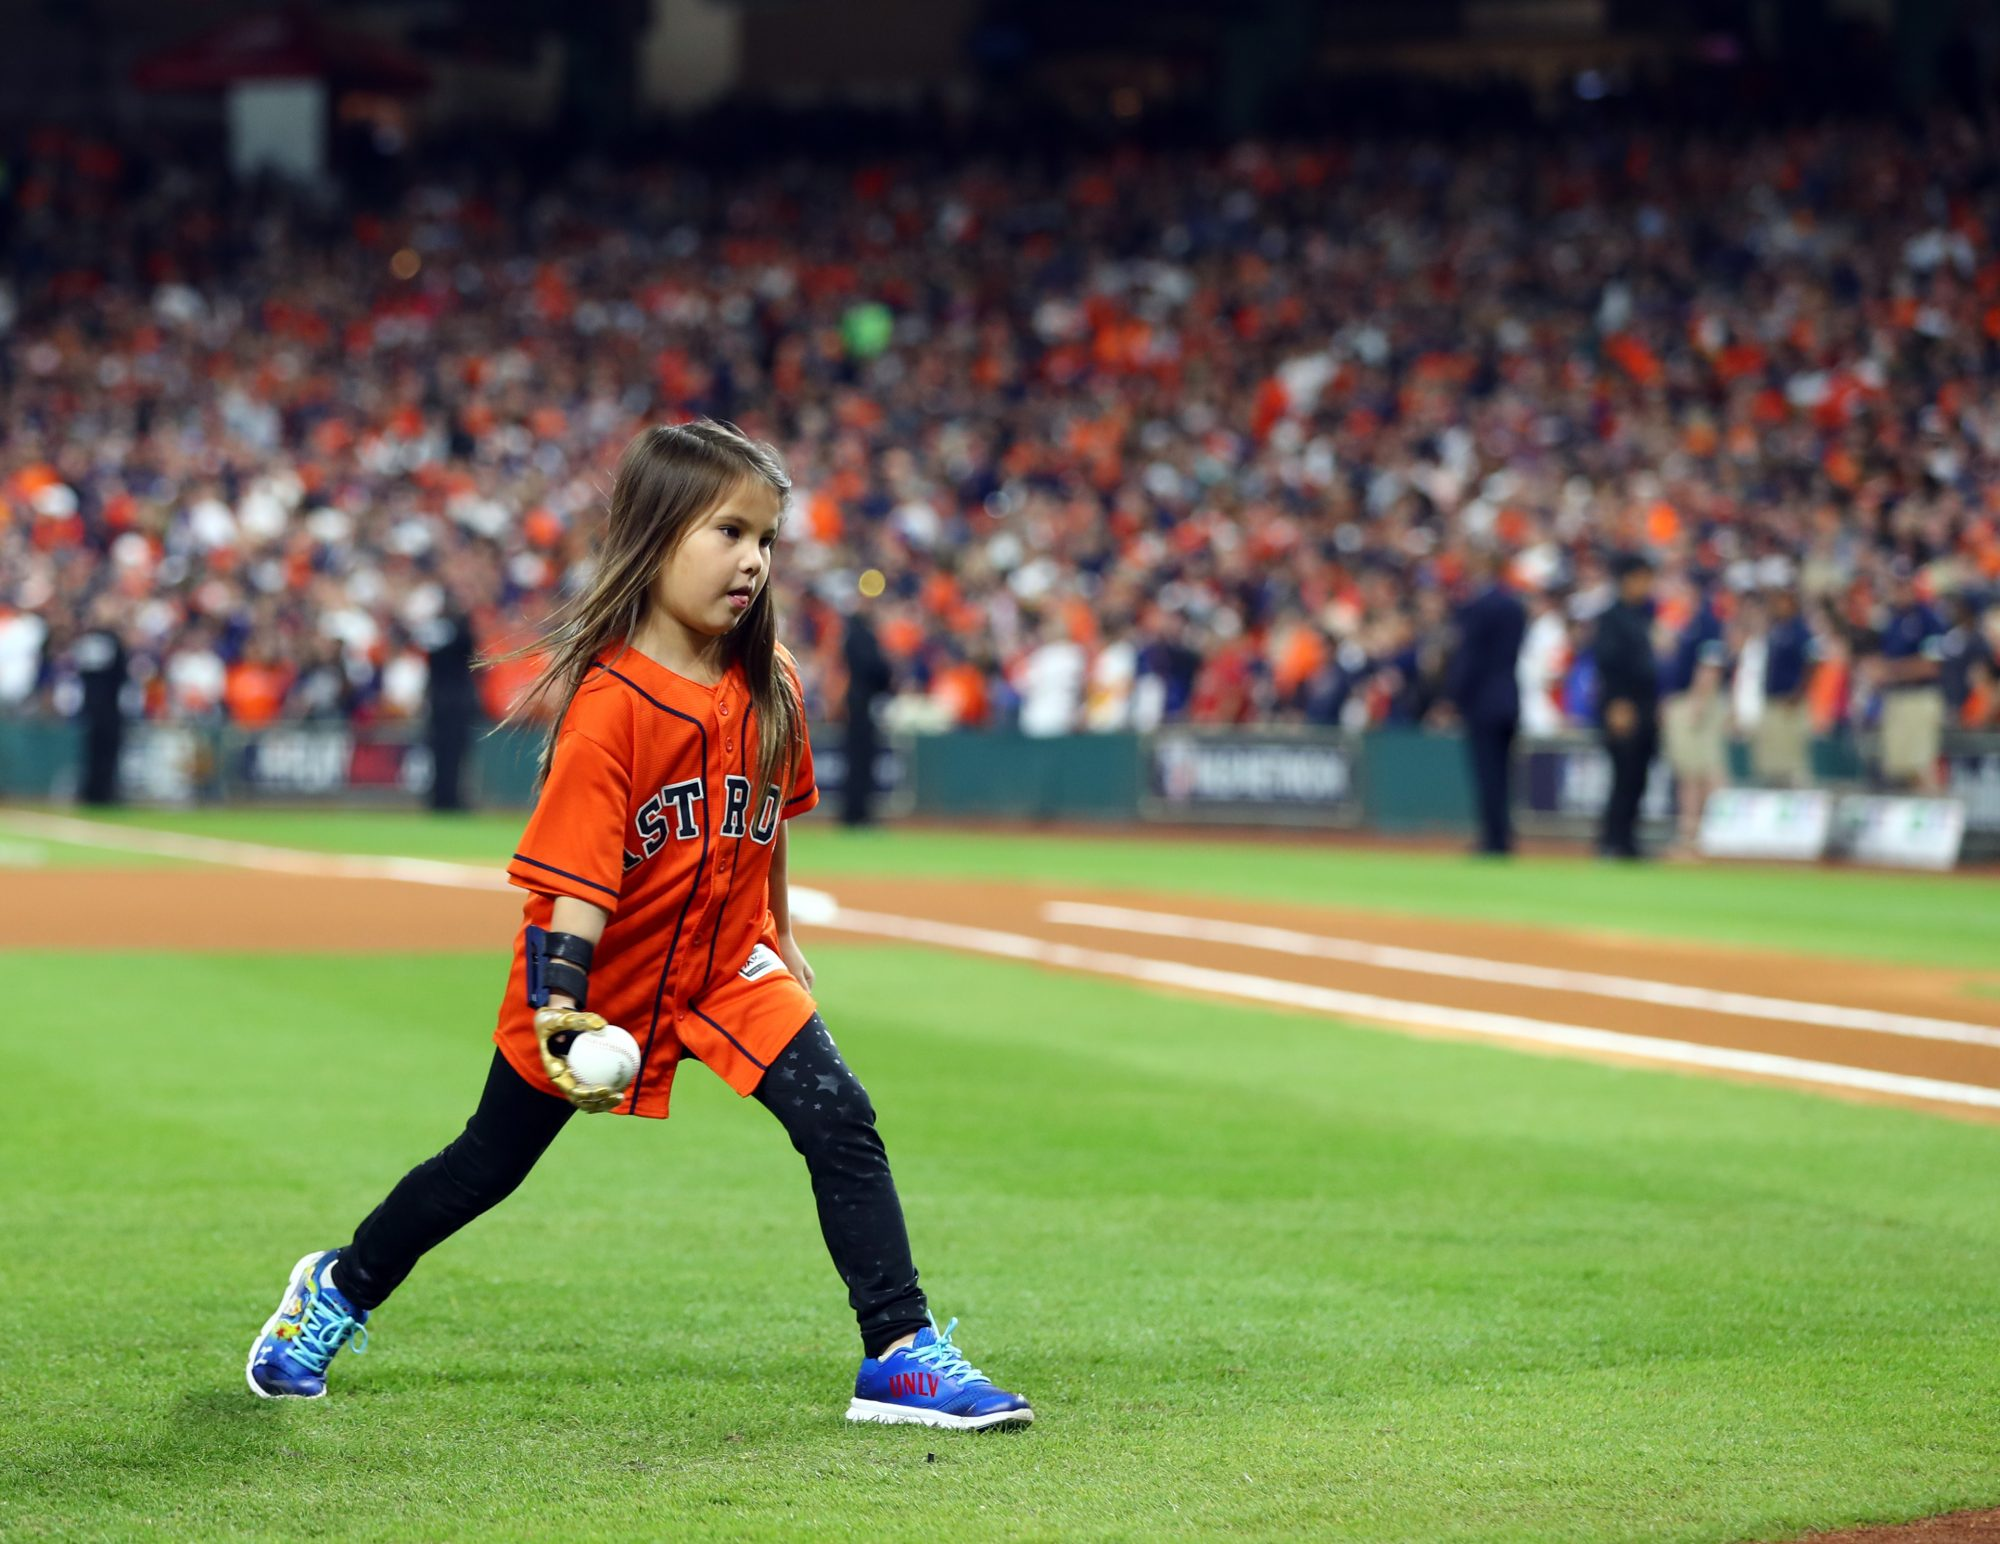 Hailey Dawson Throws First Pitch Game 4